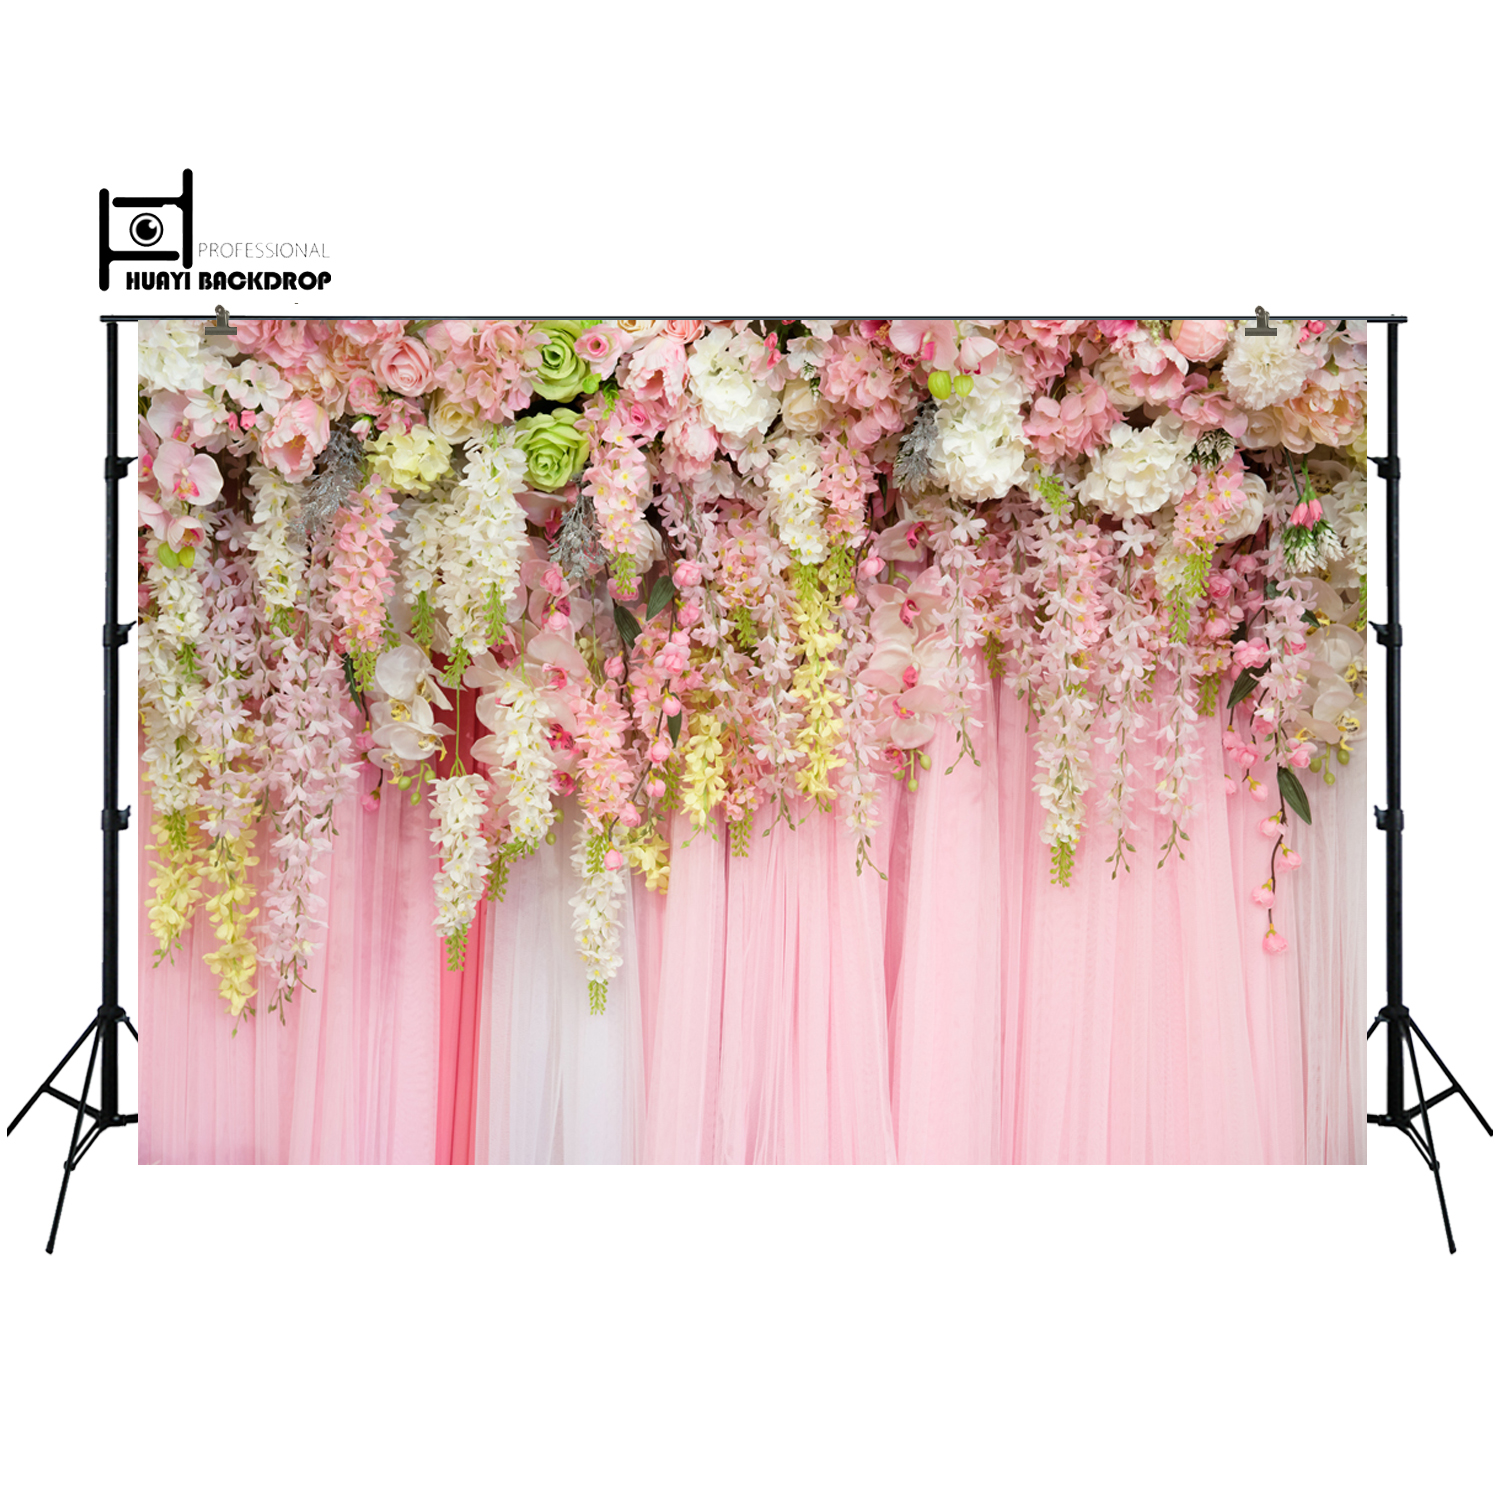 Wedding backdrop flowers wall photography background,birthday party baby shower decor banner floral photo backdrop props XT-6740 allenjoy photography background baby shower step and repeat backdrop custom made any style wedding birthday photo booth backdrop